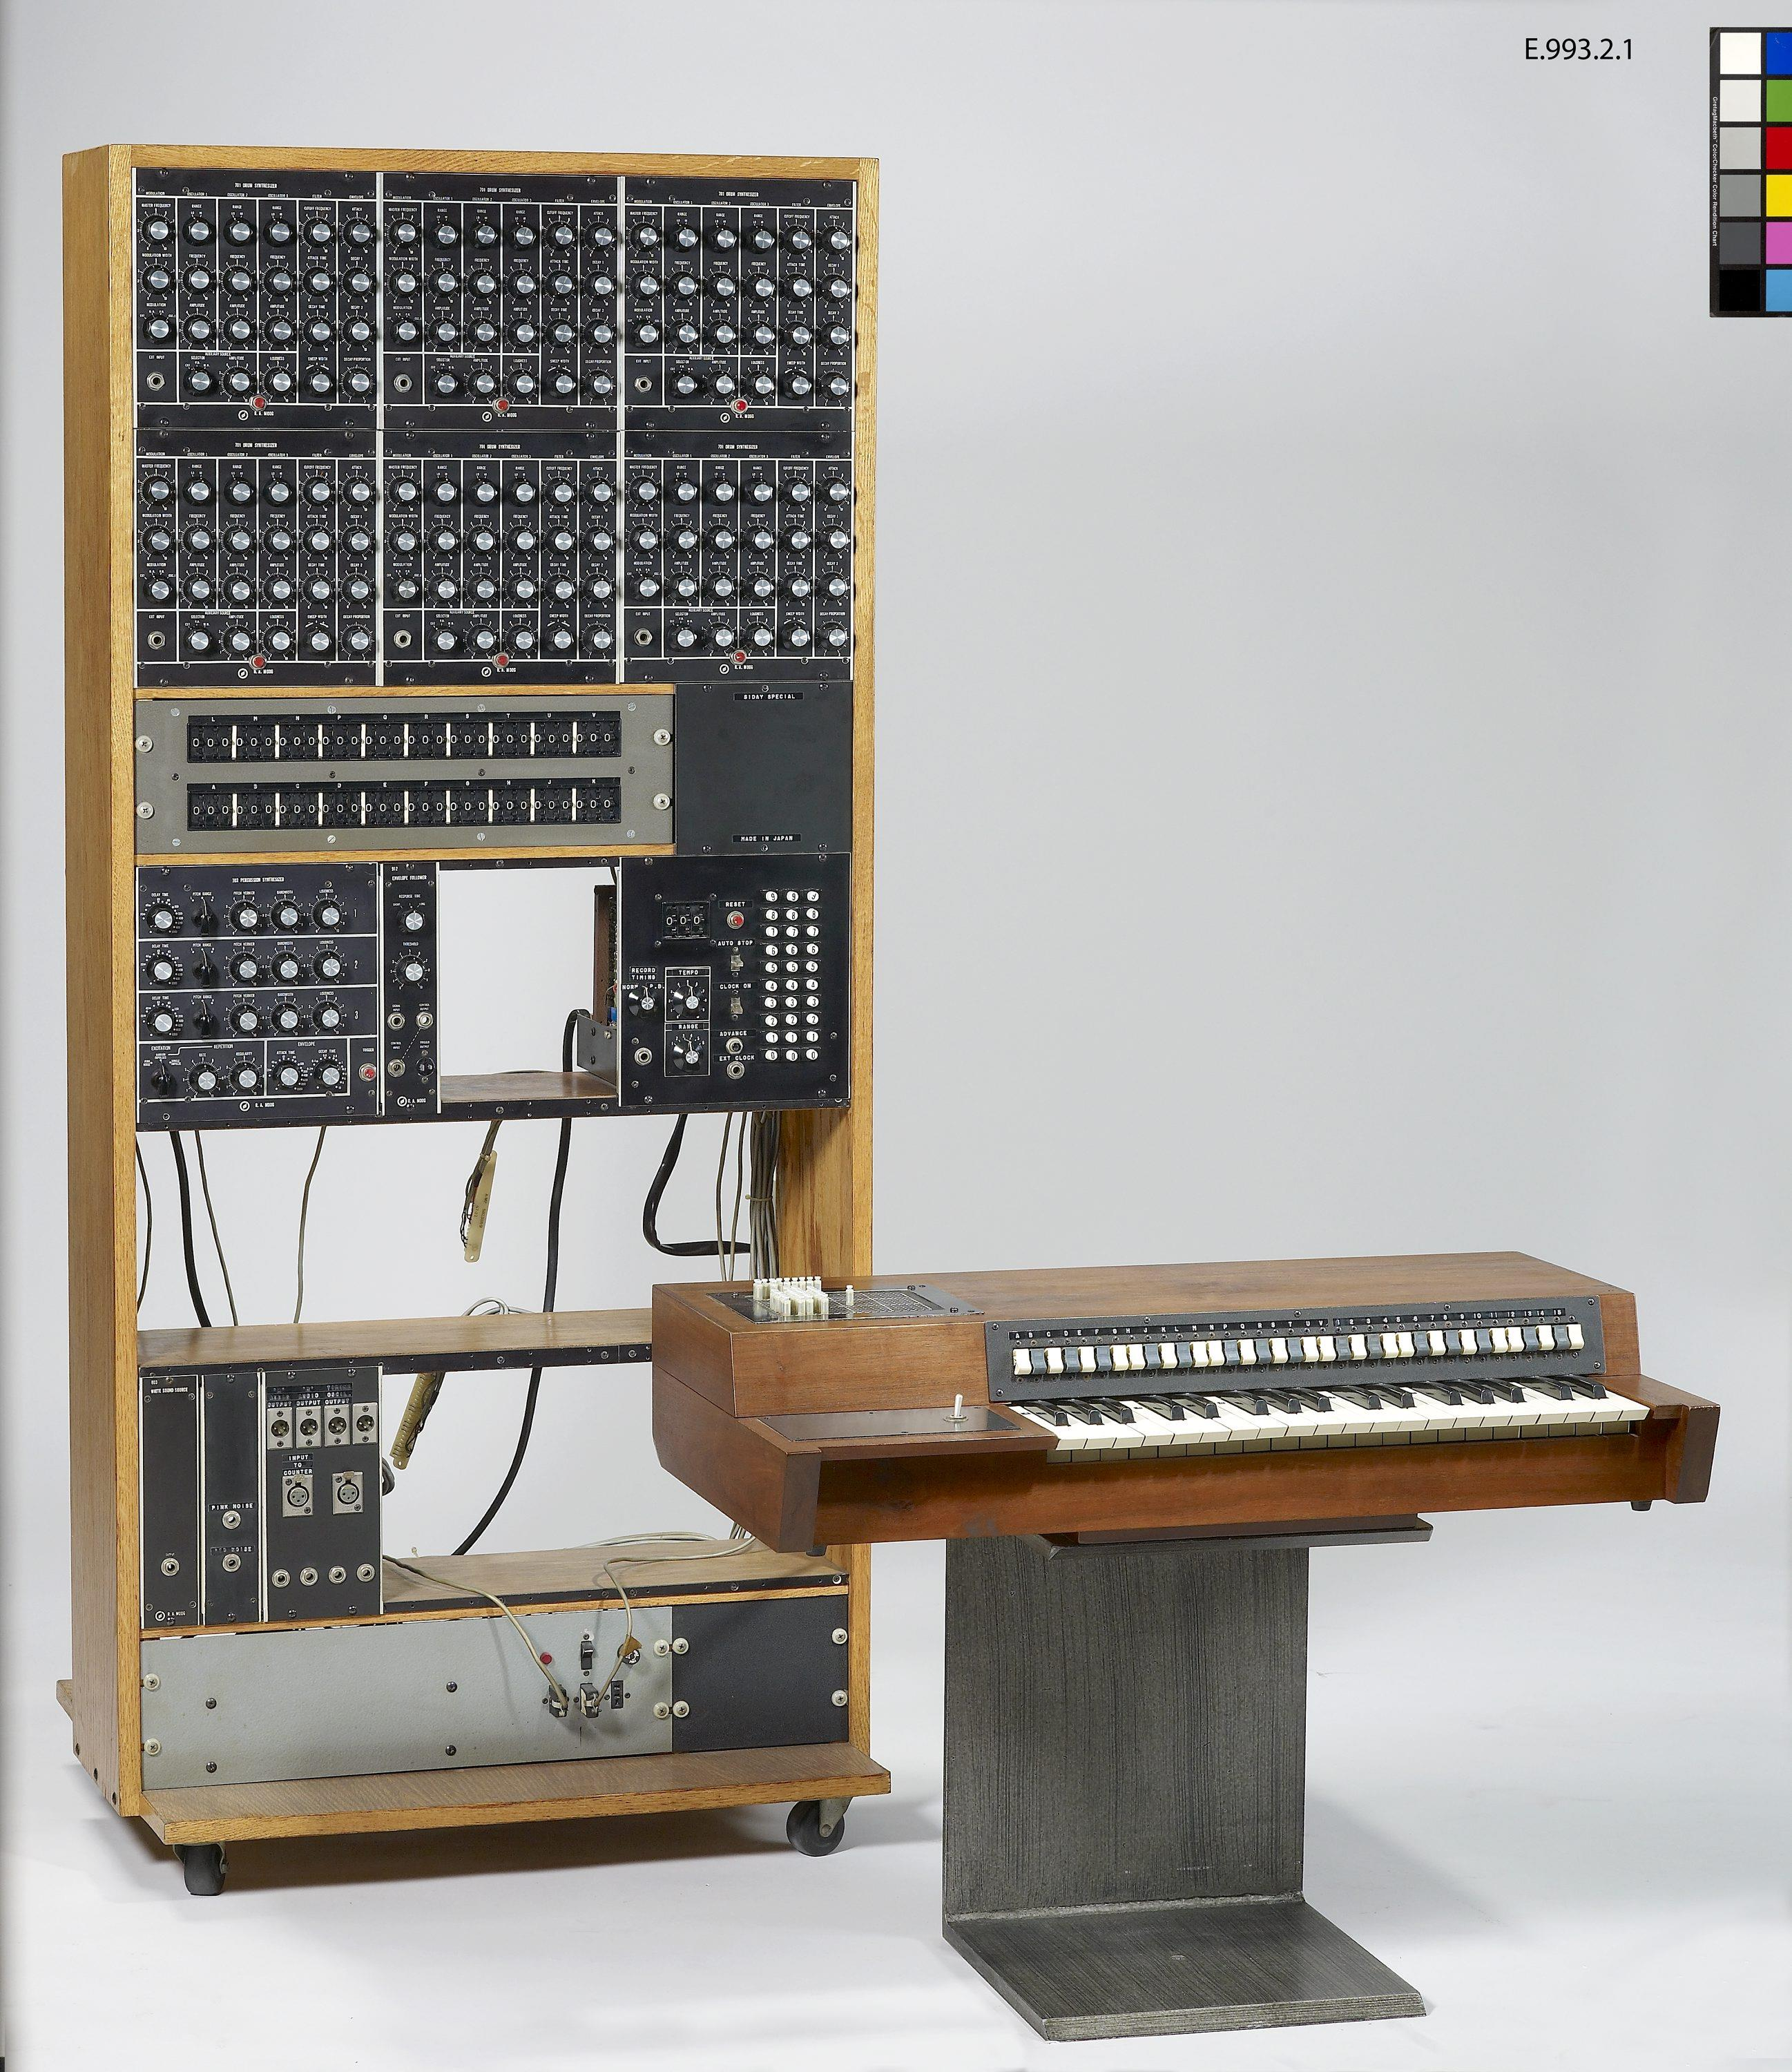 This online museum's collection of rare synths is insane